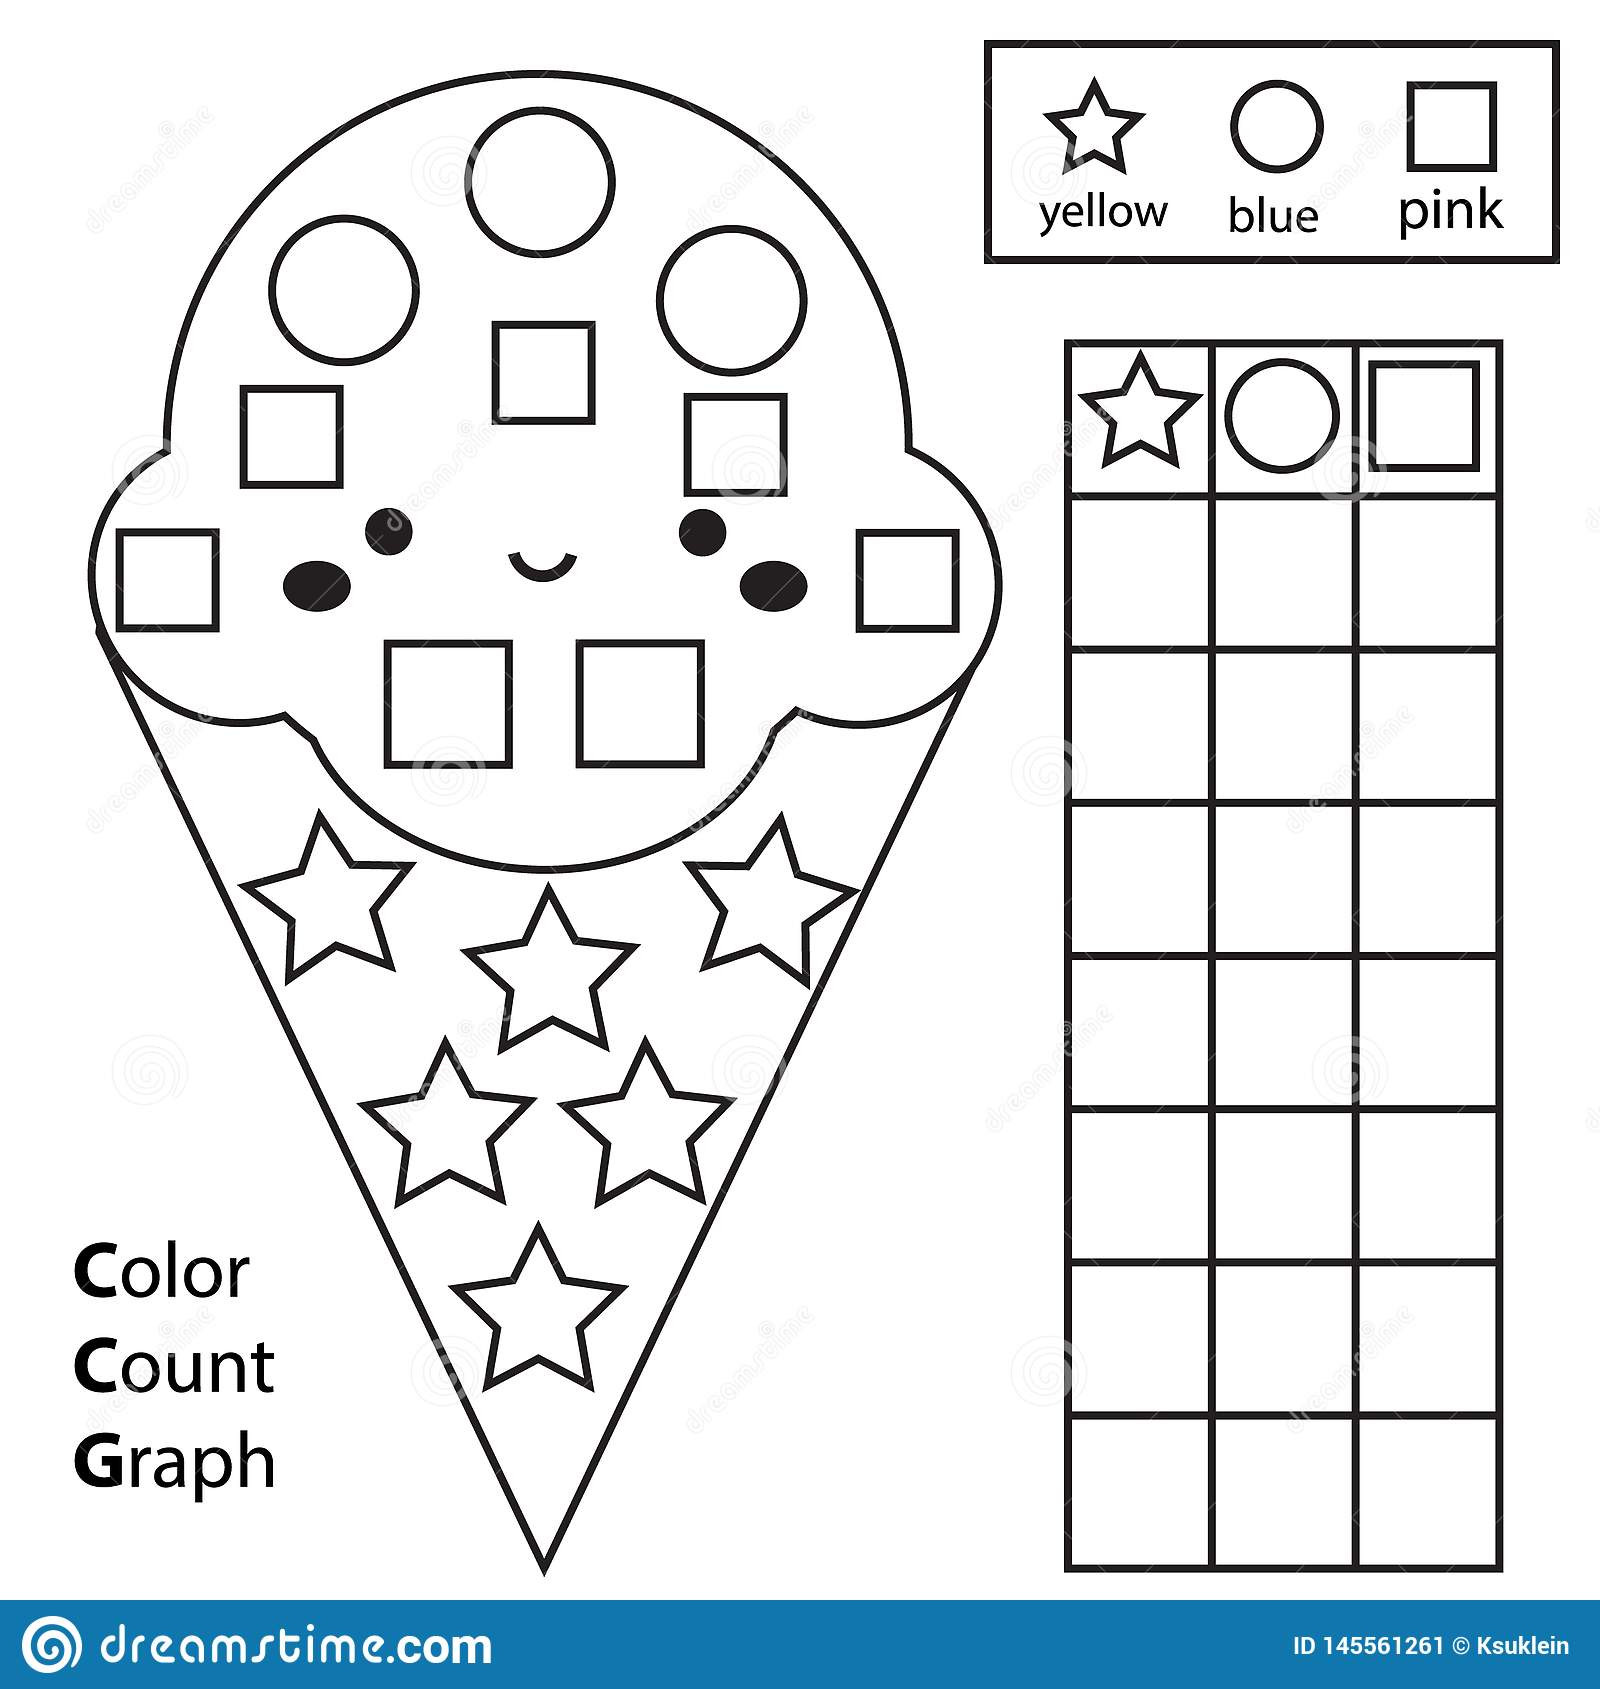 Color Blue Worksheets for Preschool Coloring Book Worksheets for Kids Coloring Color Count